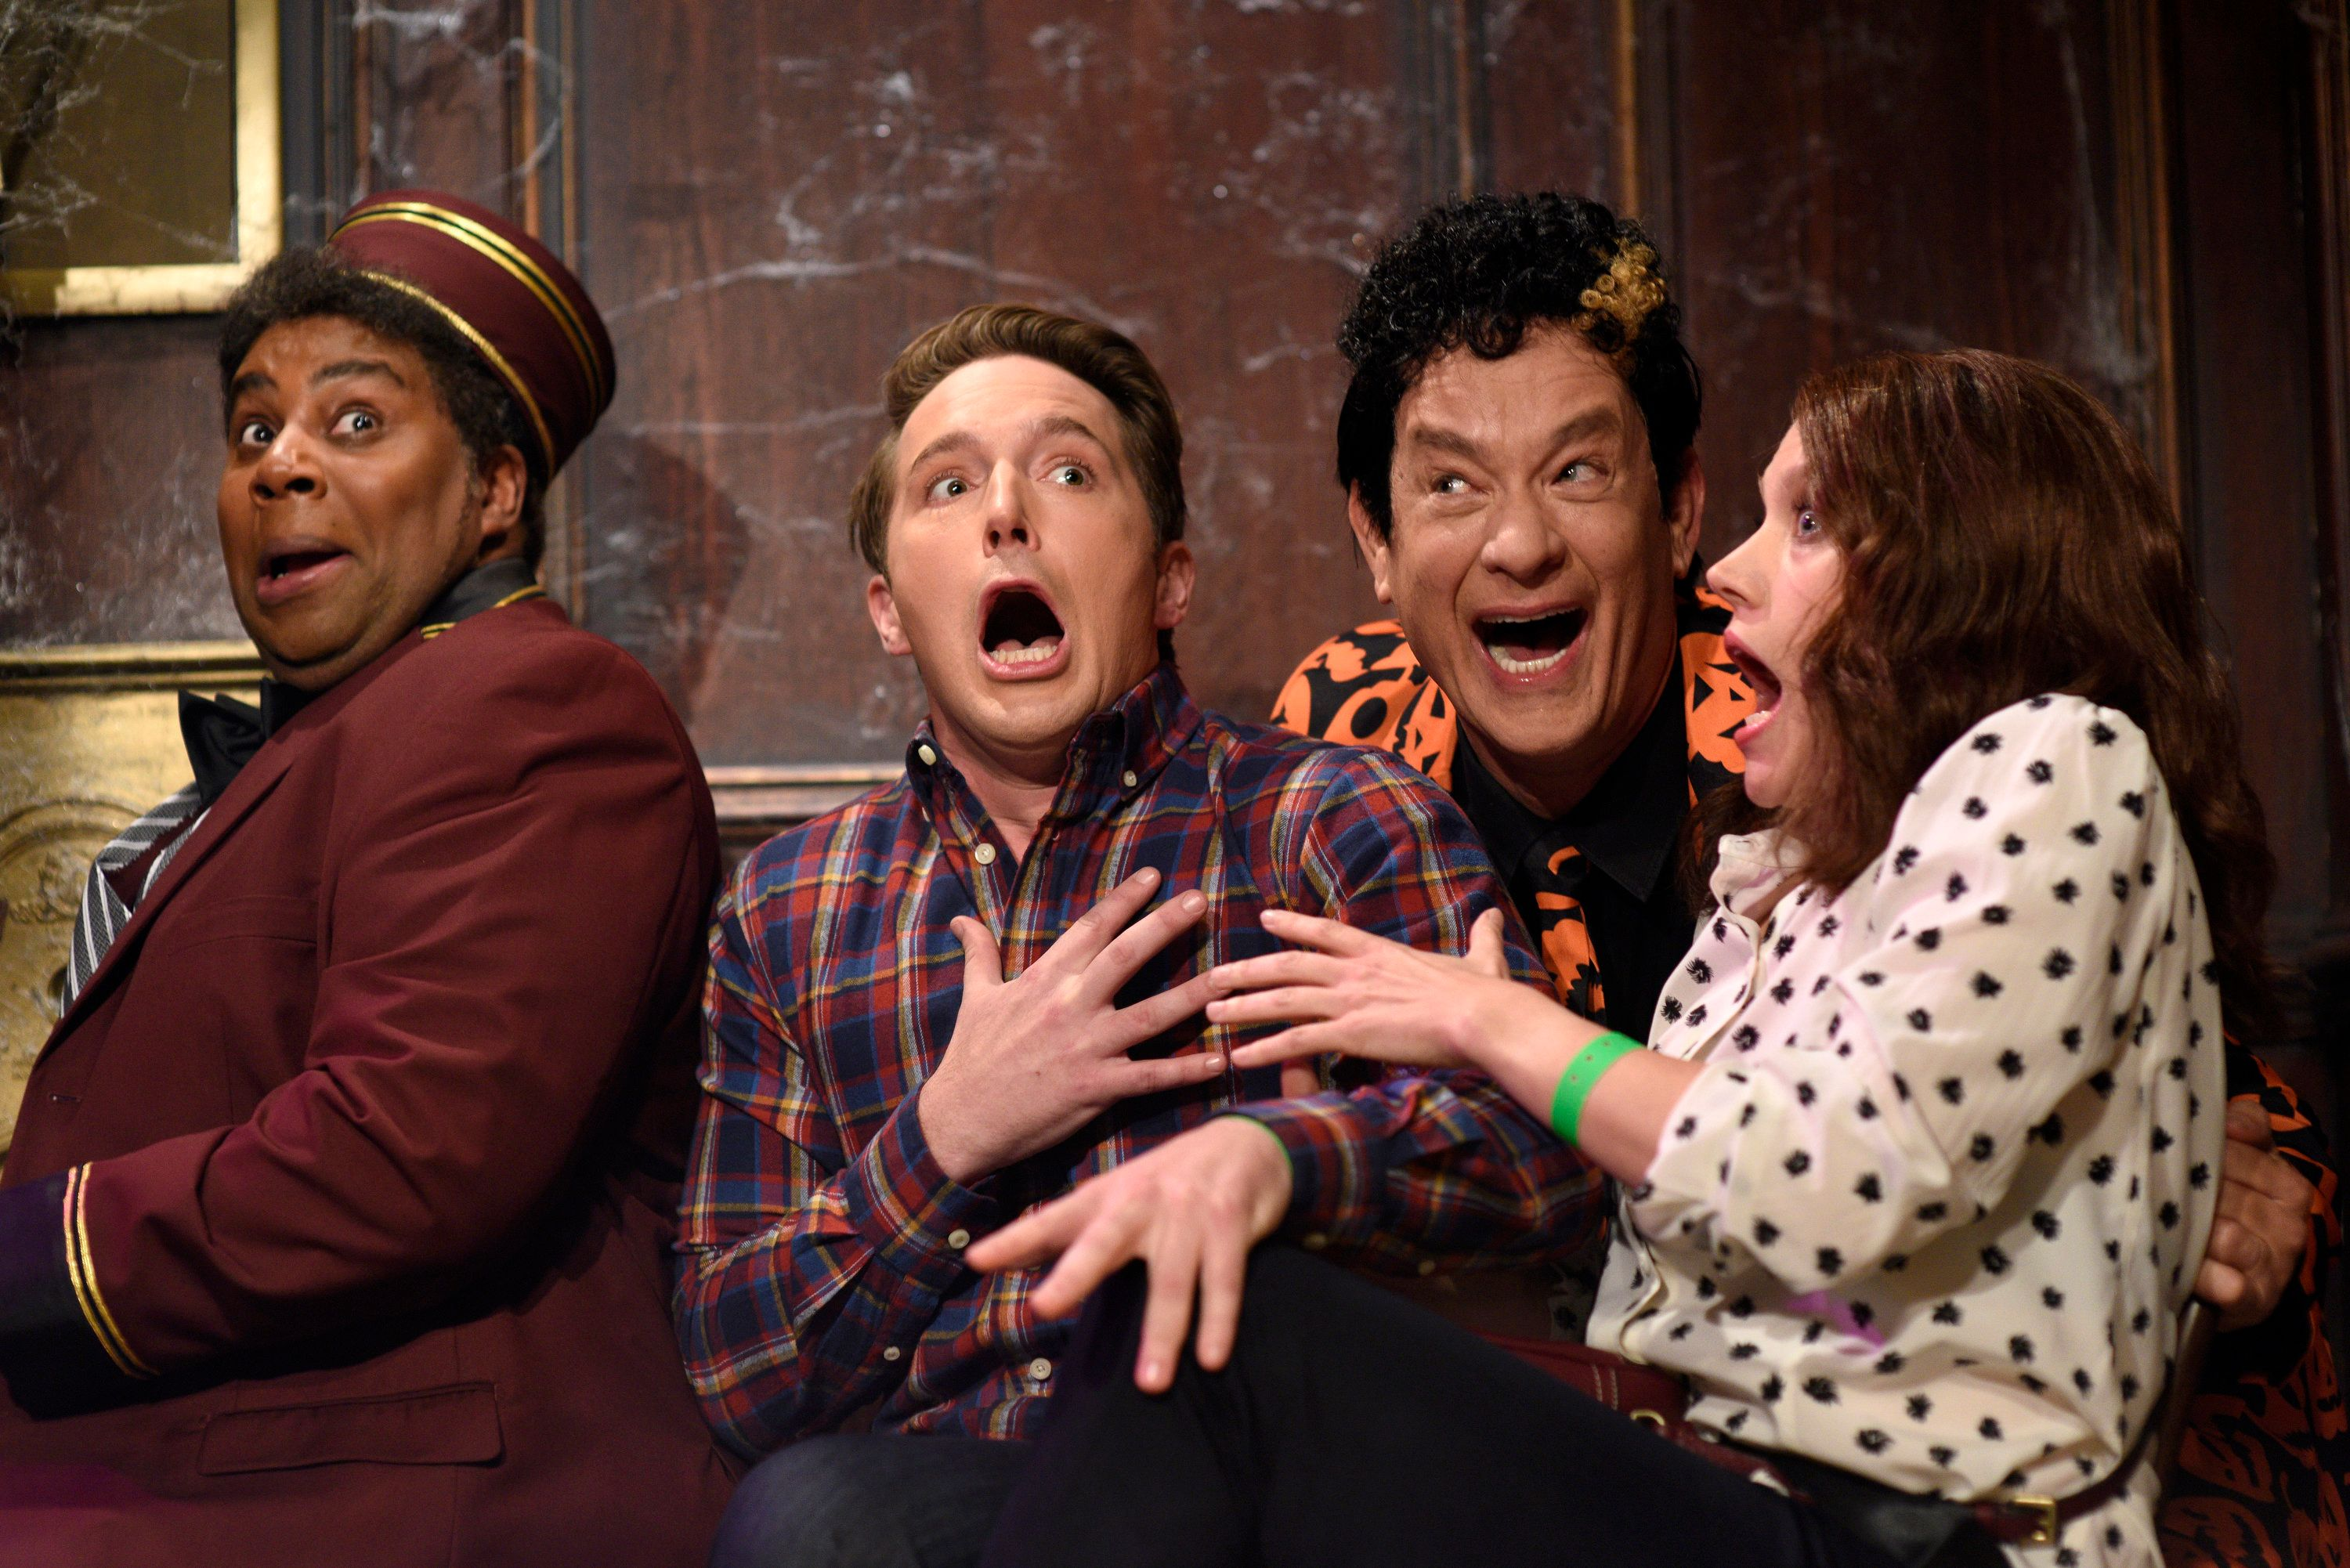 SATURDAY NIGHT LIVE -- 'Tom Hanks' Episode 1708 -- Pictured: (l-r) Kenan Thompson, Beck Bennett, Tom Hanks as David Pumpkins, and Kate McKinnon during the 'Haunted Elevator' sketch on October 22, 2016 -- (Photo by: Will Heath/NBC/NBCU Photo Bank via Getty Images)